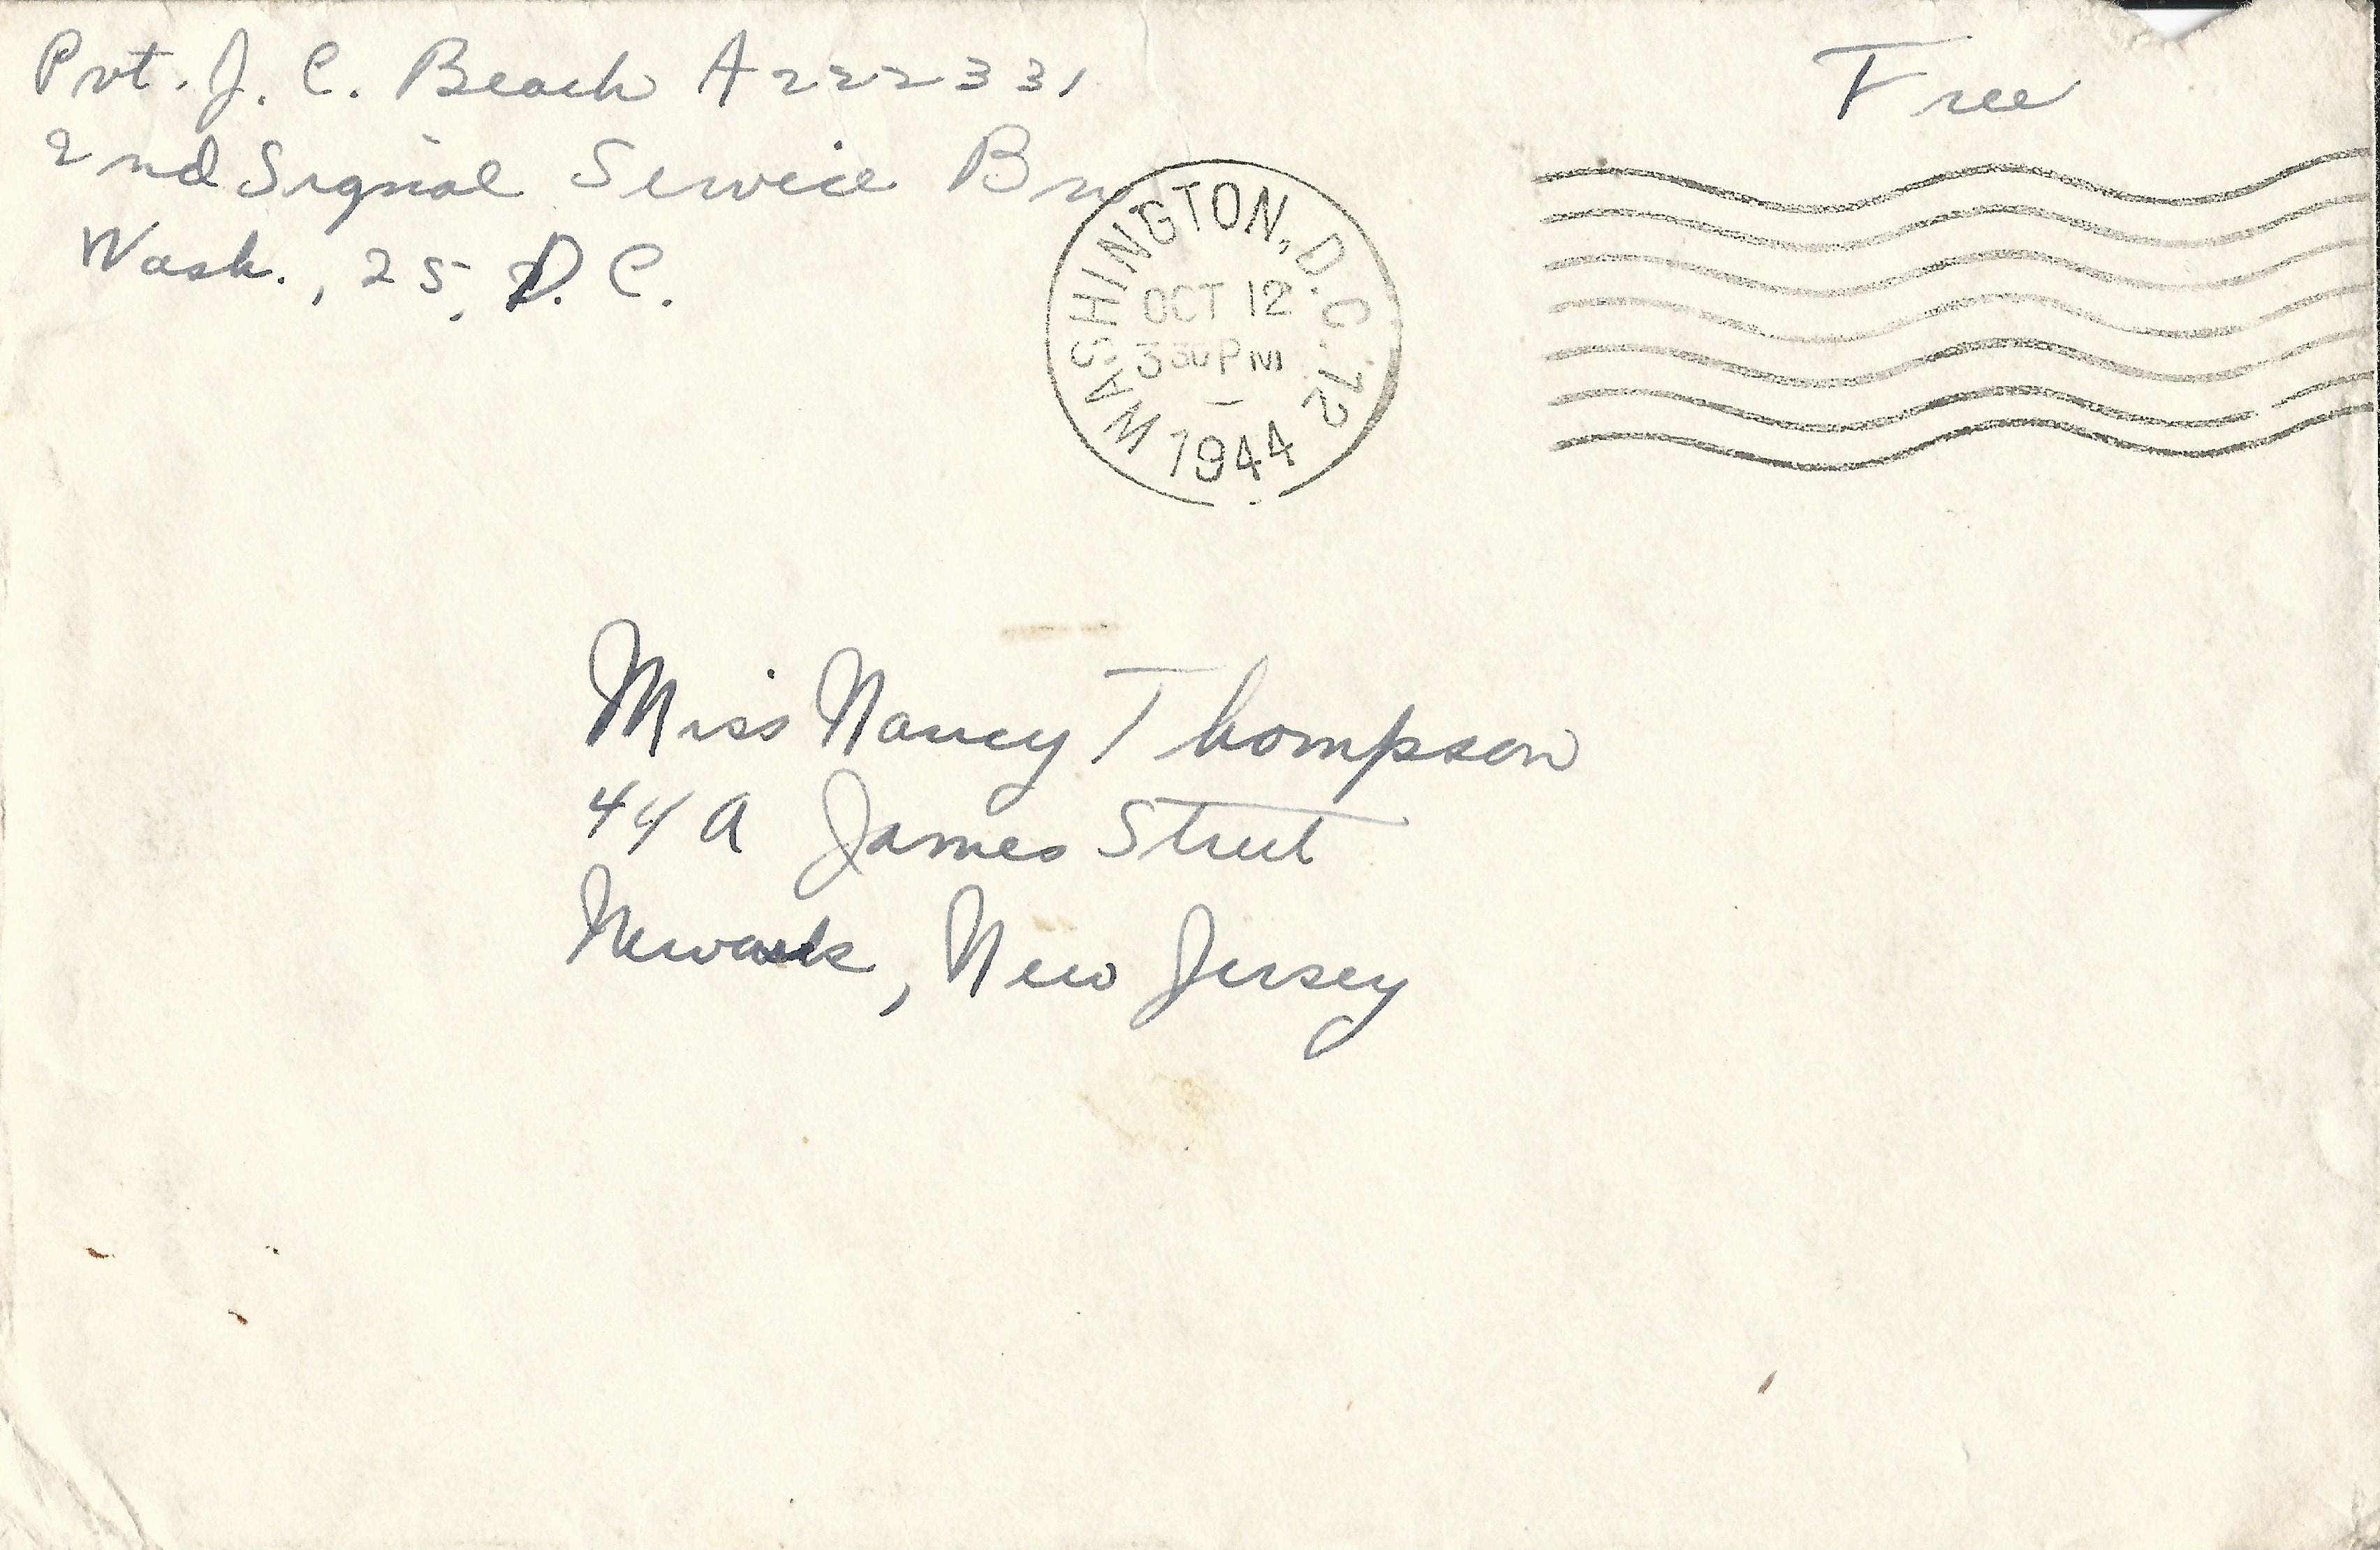 Julia Beach Envelope October 12 1944